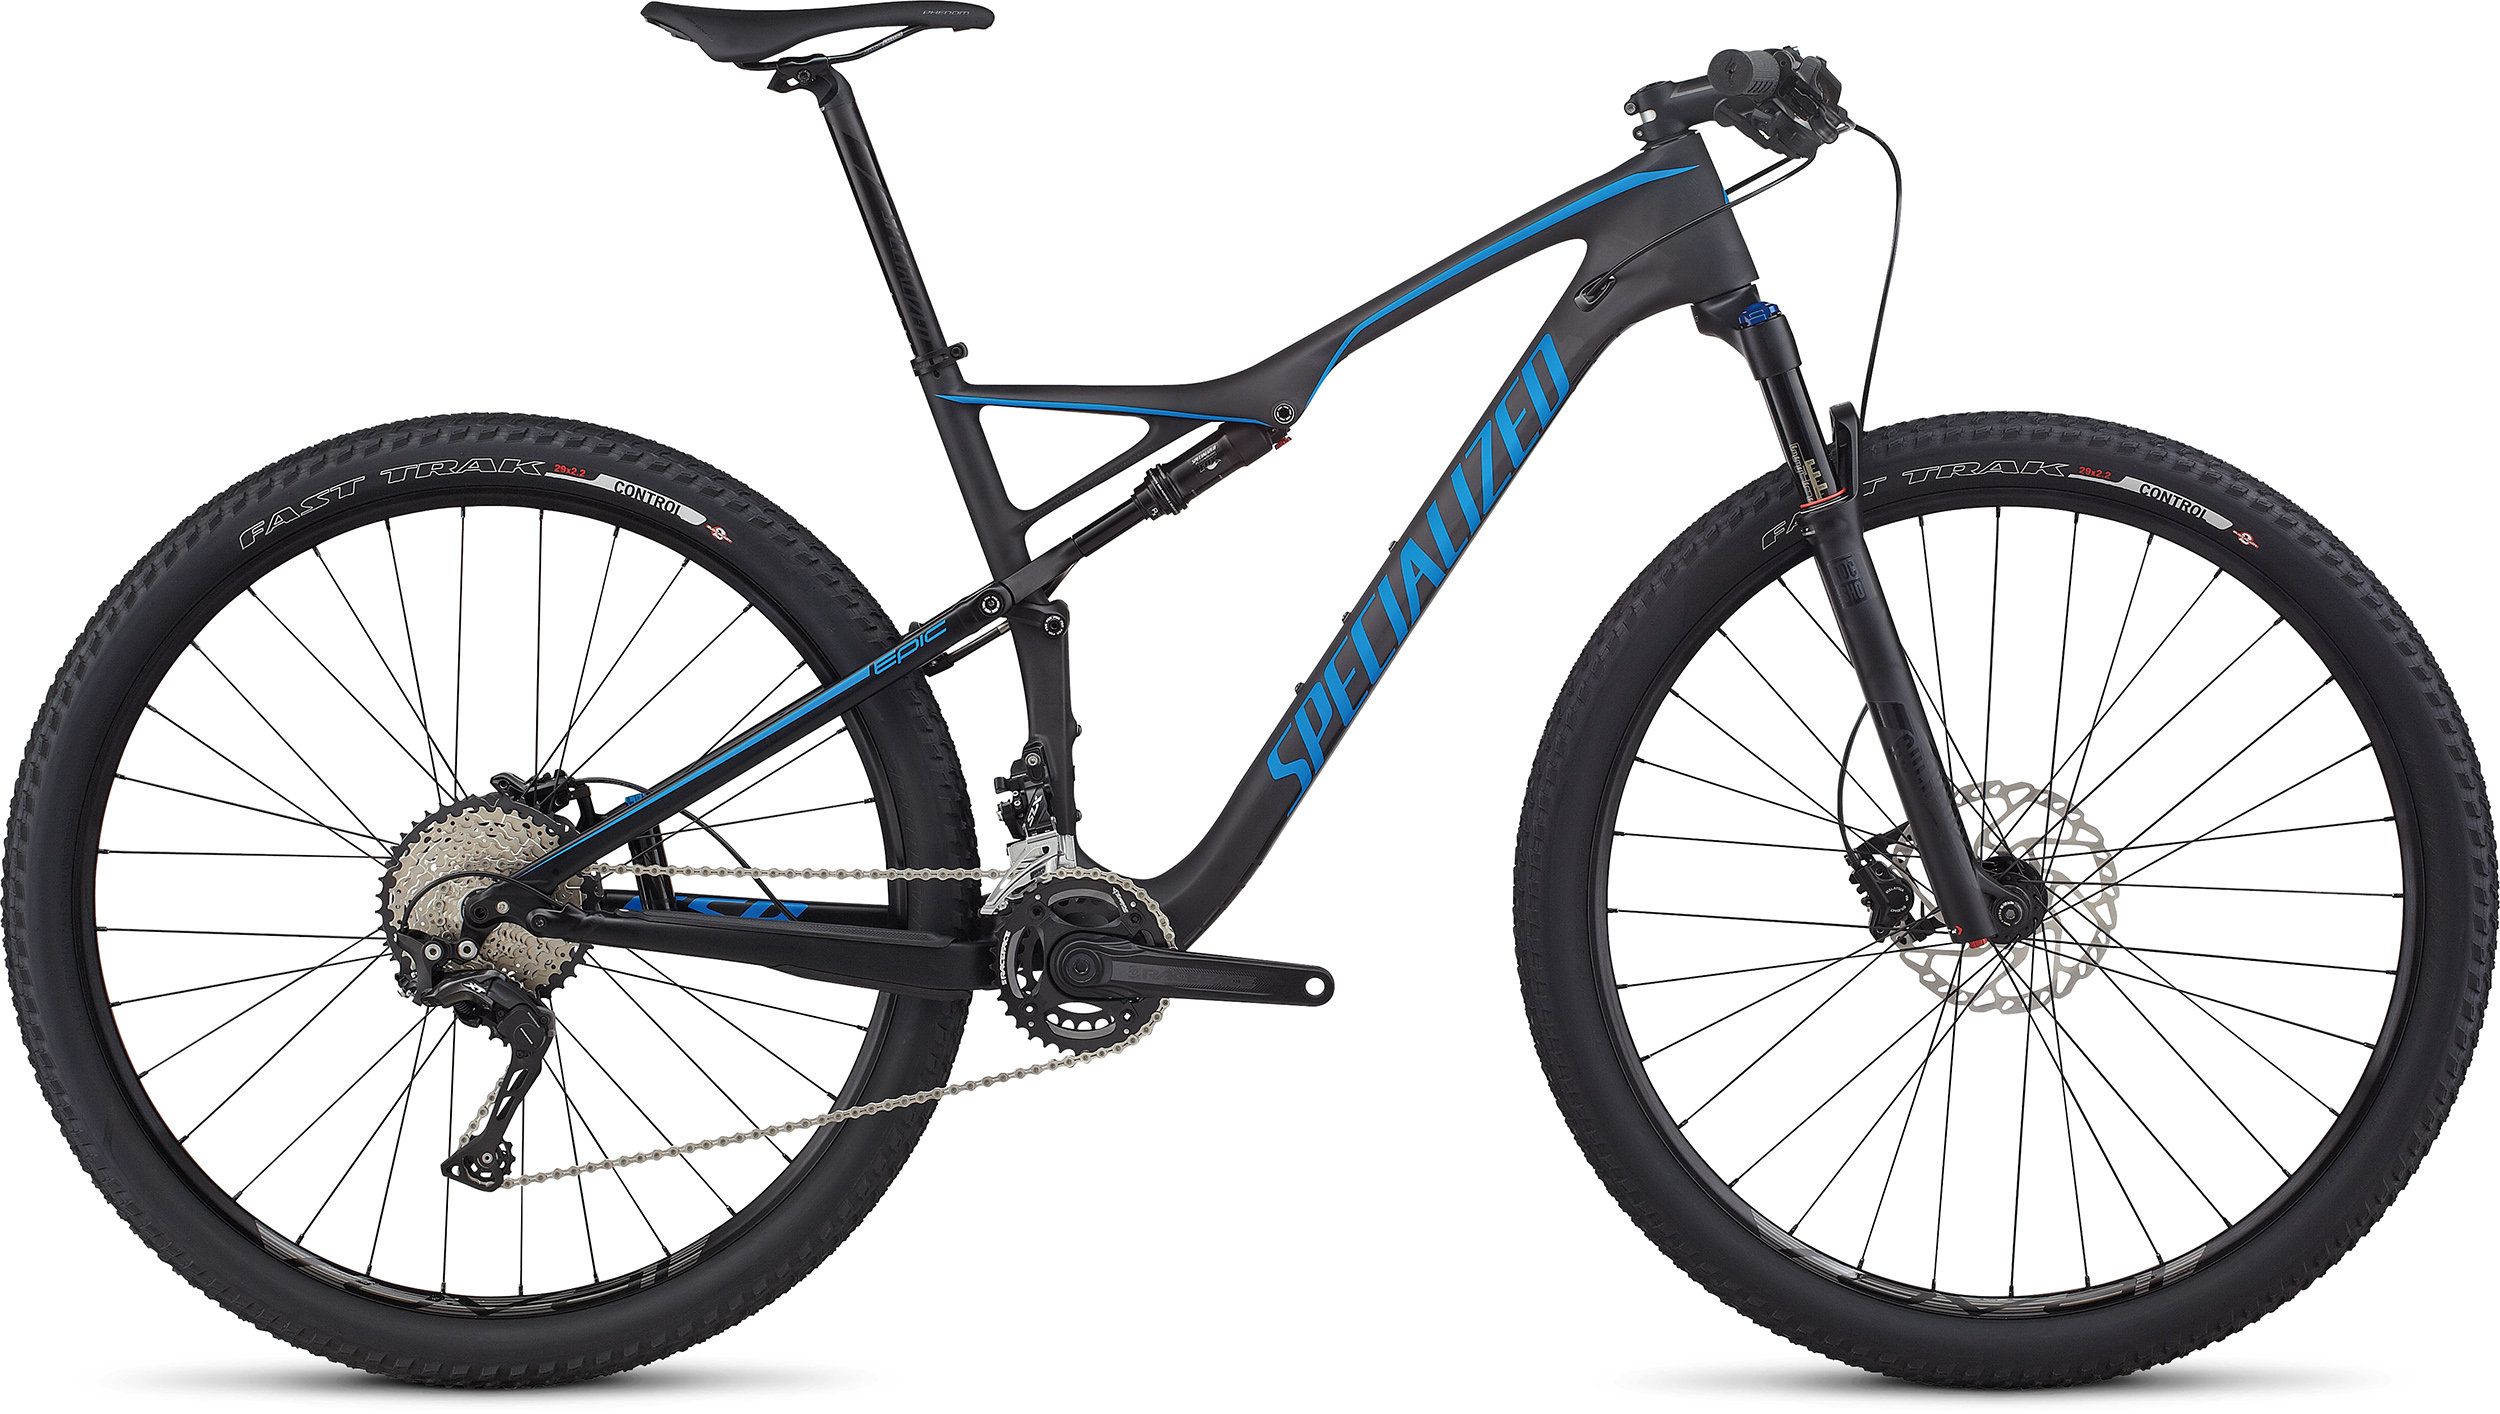 SPECIALIZED EPIC FSR COMP CARBON 29 CARB/NENBLU XL - SPECIALIZED EPIC FSR COMP CARBON 29 CARB/NENBLU XL